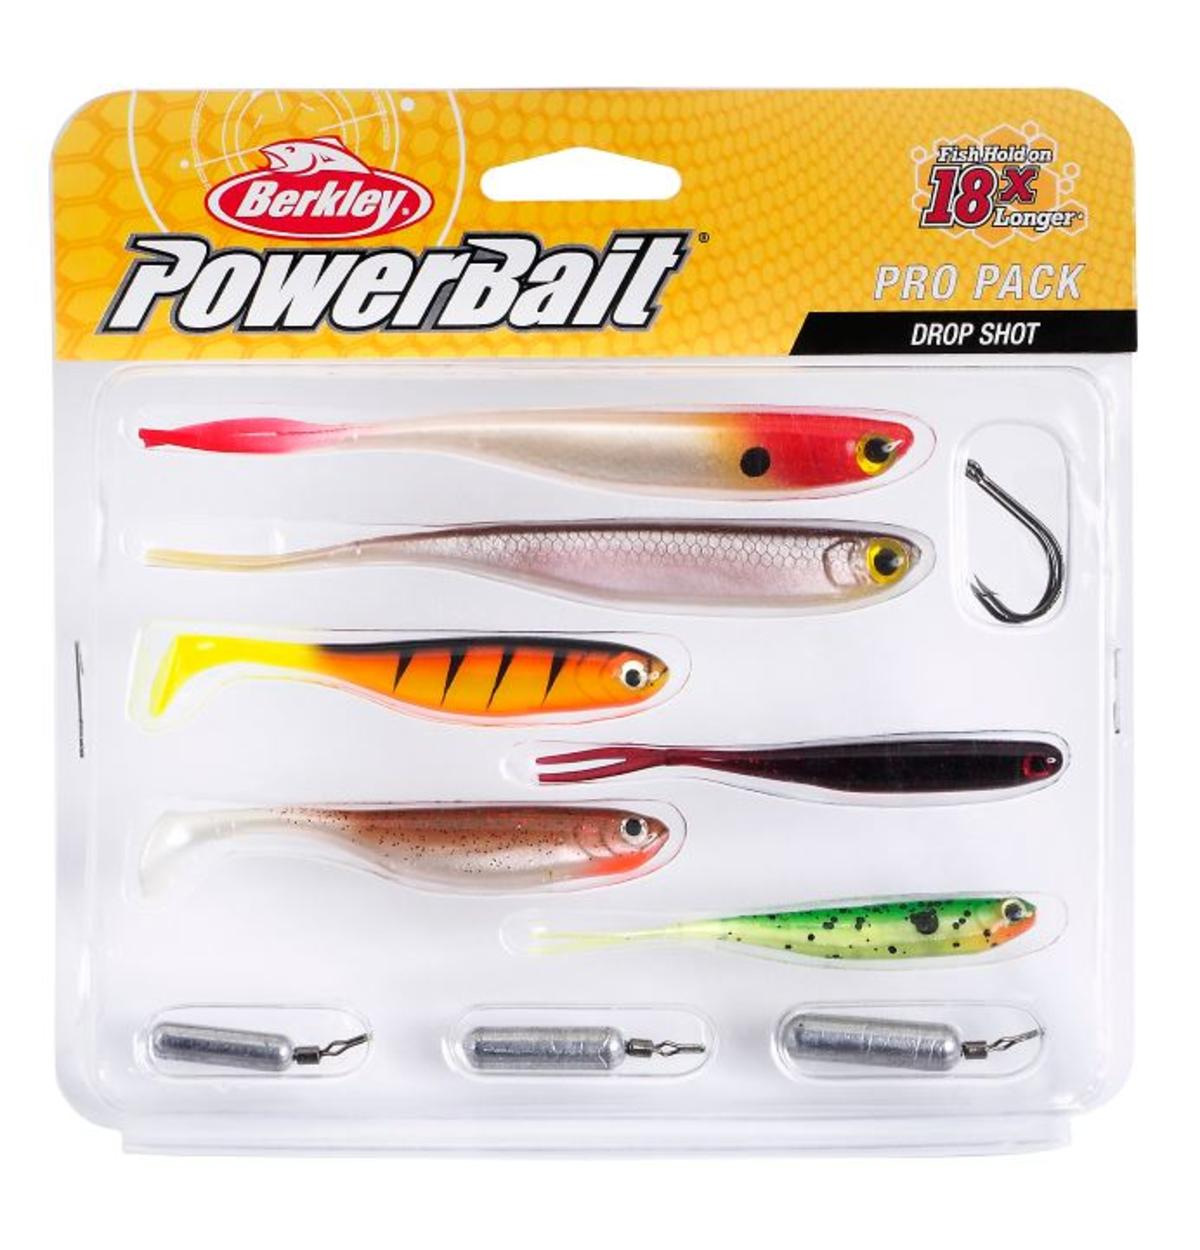 New Berkley Pro Pack Drop Shot / Lure Fishing Set - Lures, Hooks & Weights